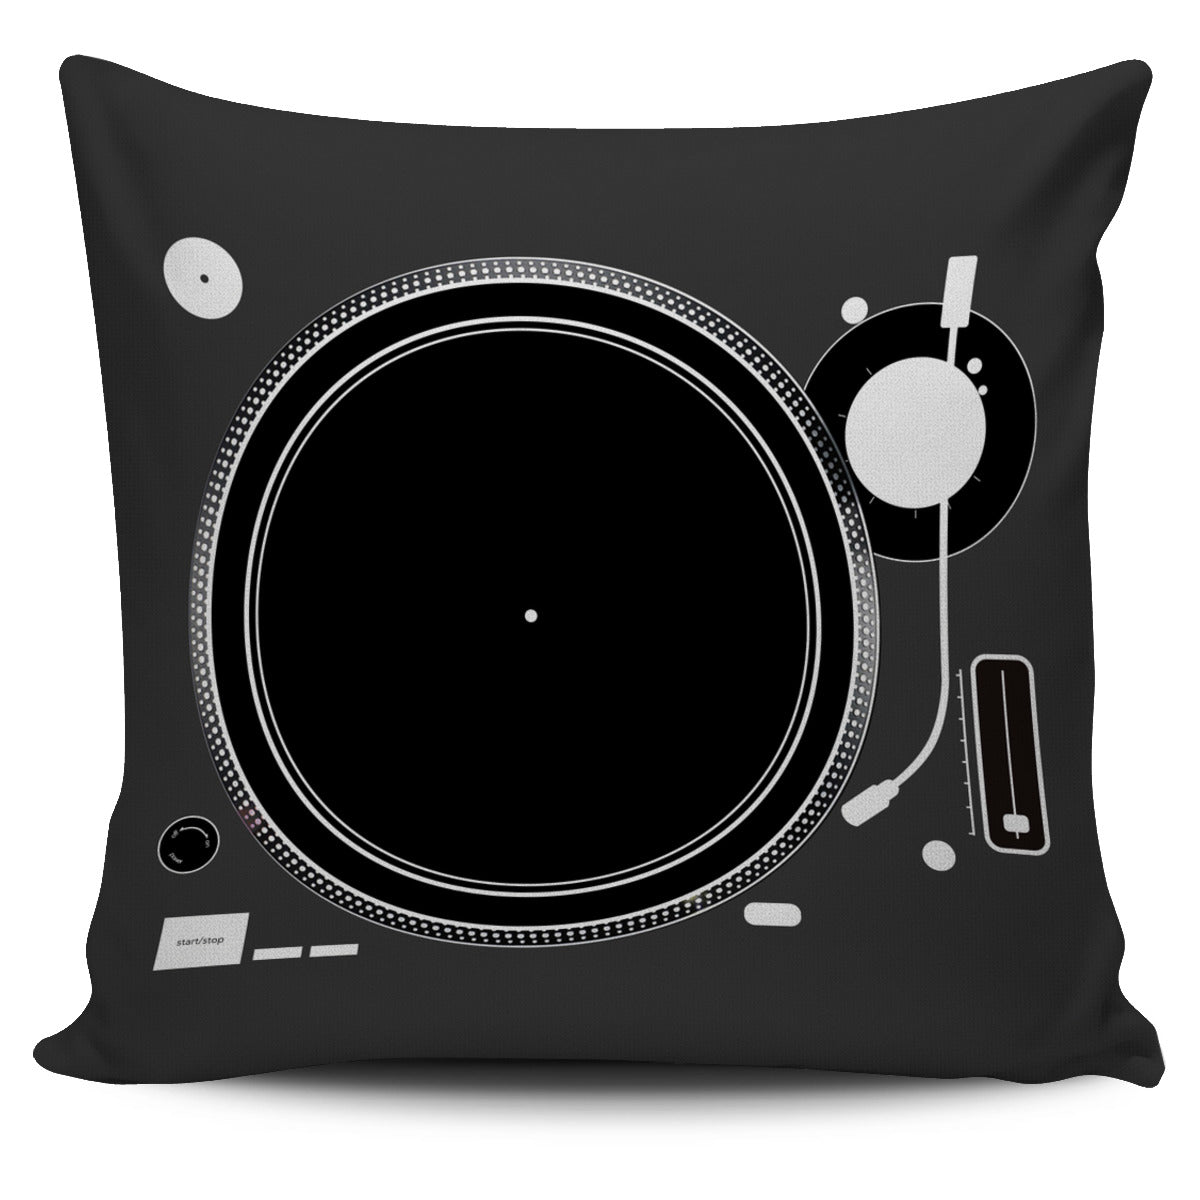 Turntable Pillows